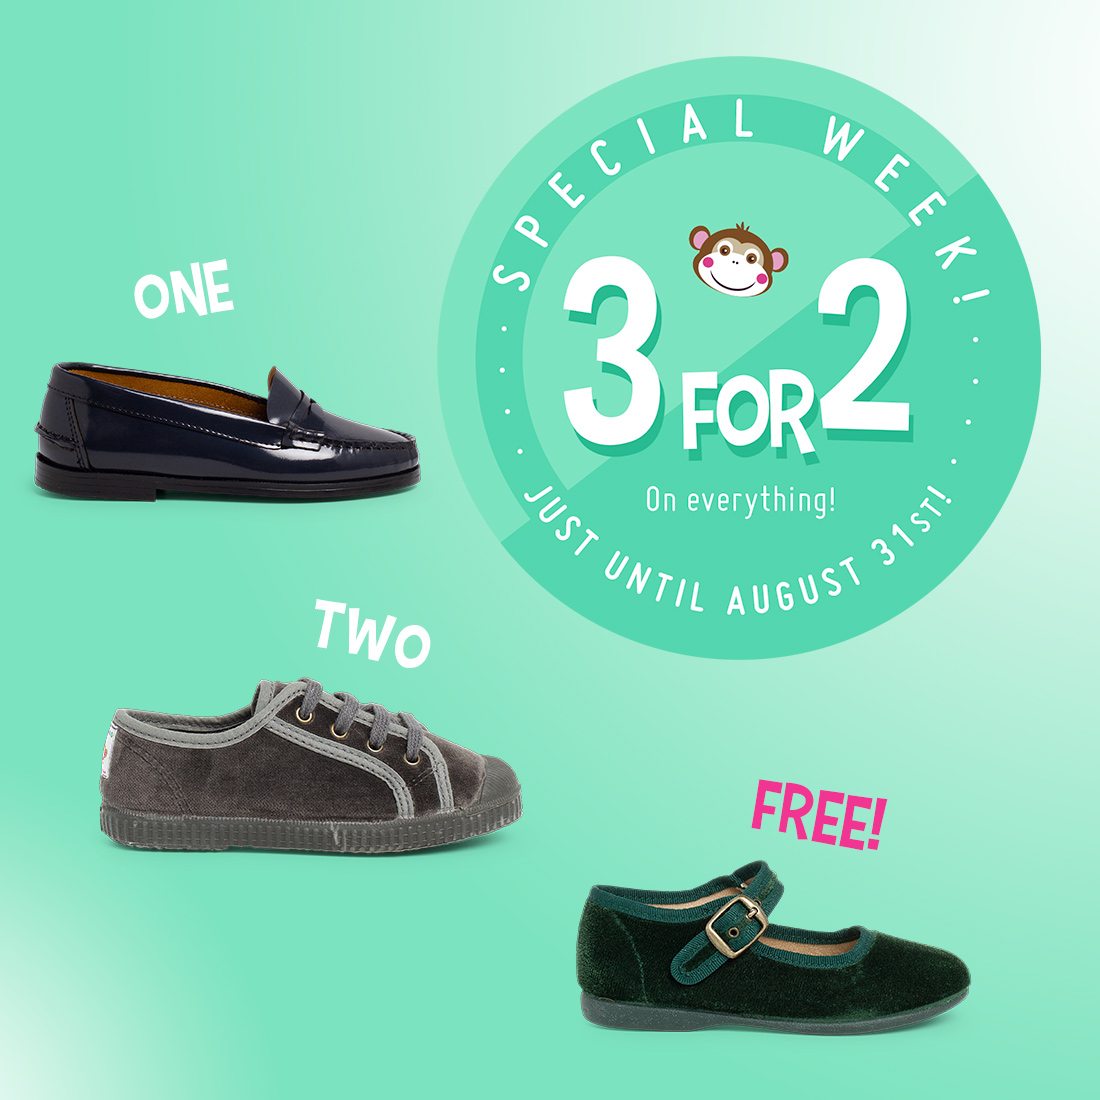 Pisamonas 3 for 2 offer is back!